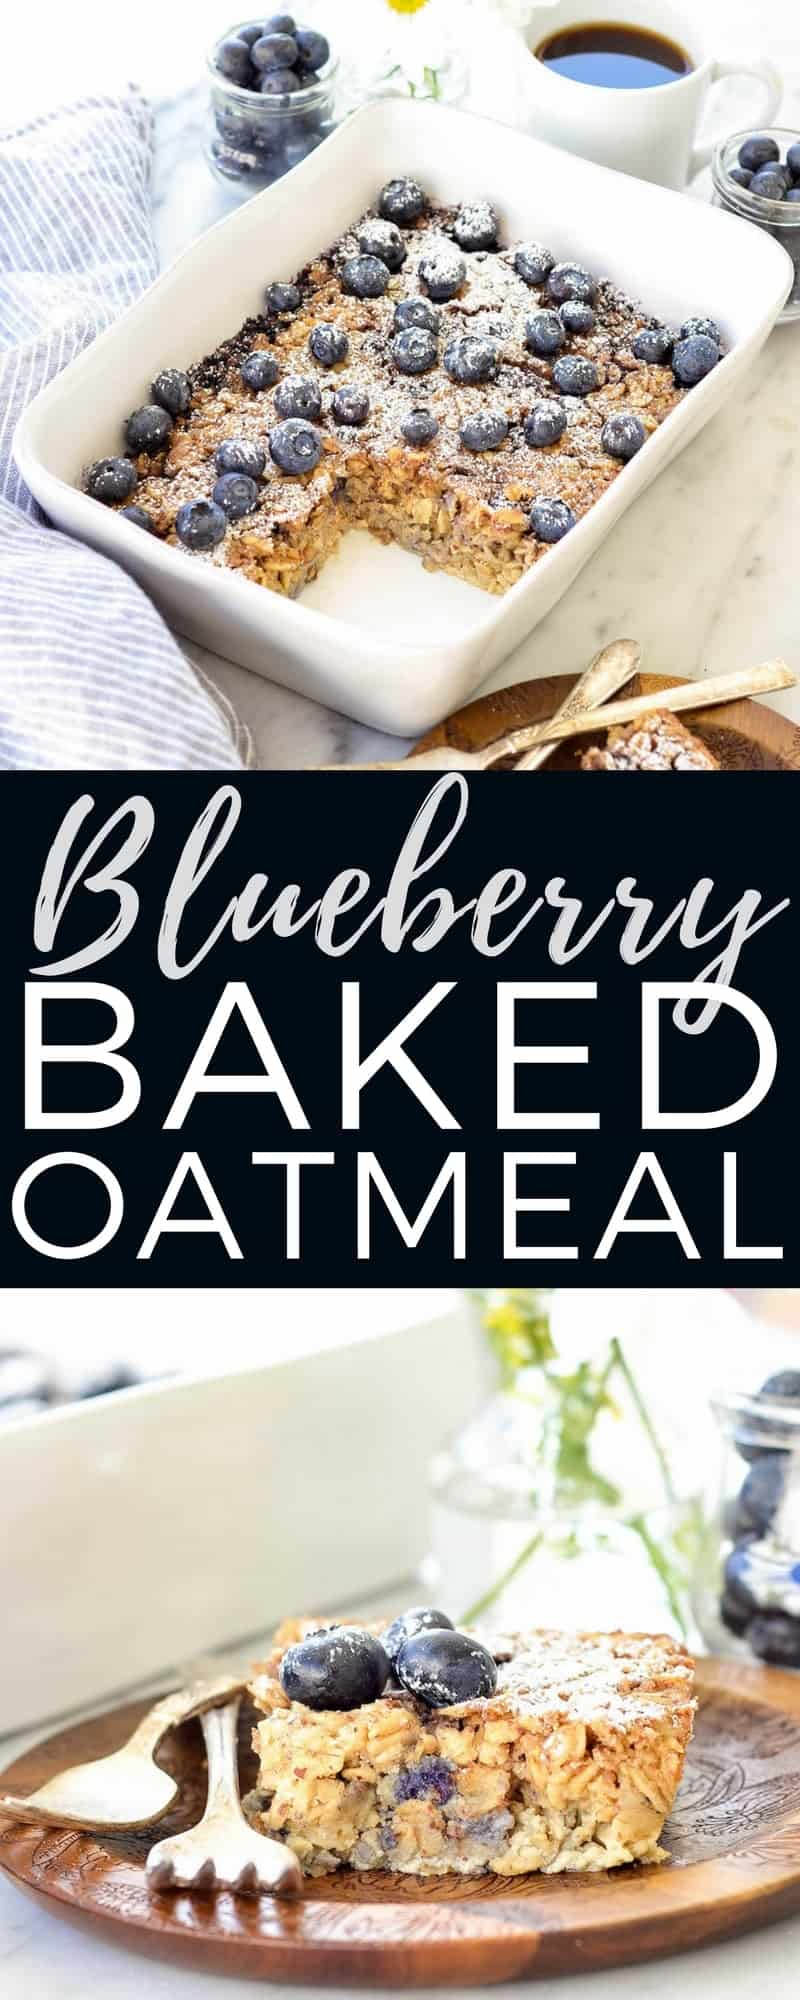 This Blueberry Baked Oatmeal recipe is the perfect make-ahead breakfast to feed a crowd! The addition of Greek yogurt and almond meal make it high-protein! It's gluten-free and refined sugar free, and totally customizable! #glutenfree #bakedoatmeal #breakfast #healthybreakfast #healthyrecipe #blueberries #greekyogurt